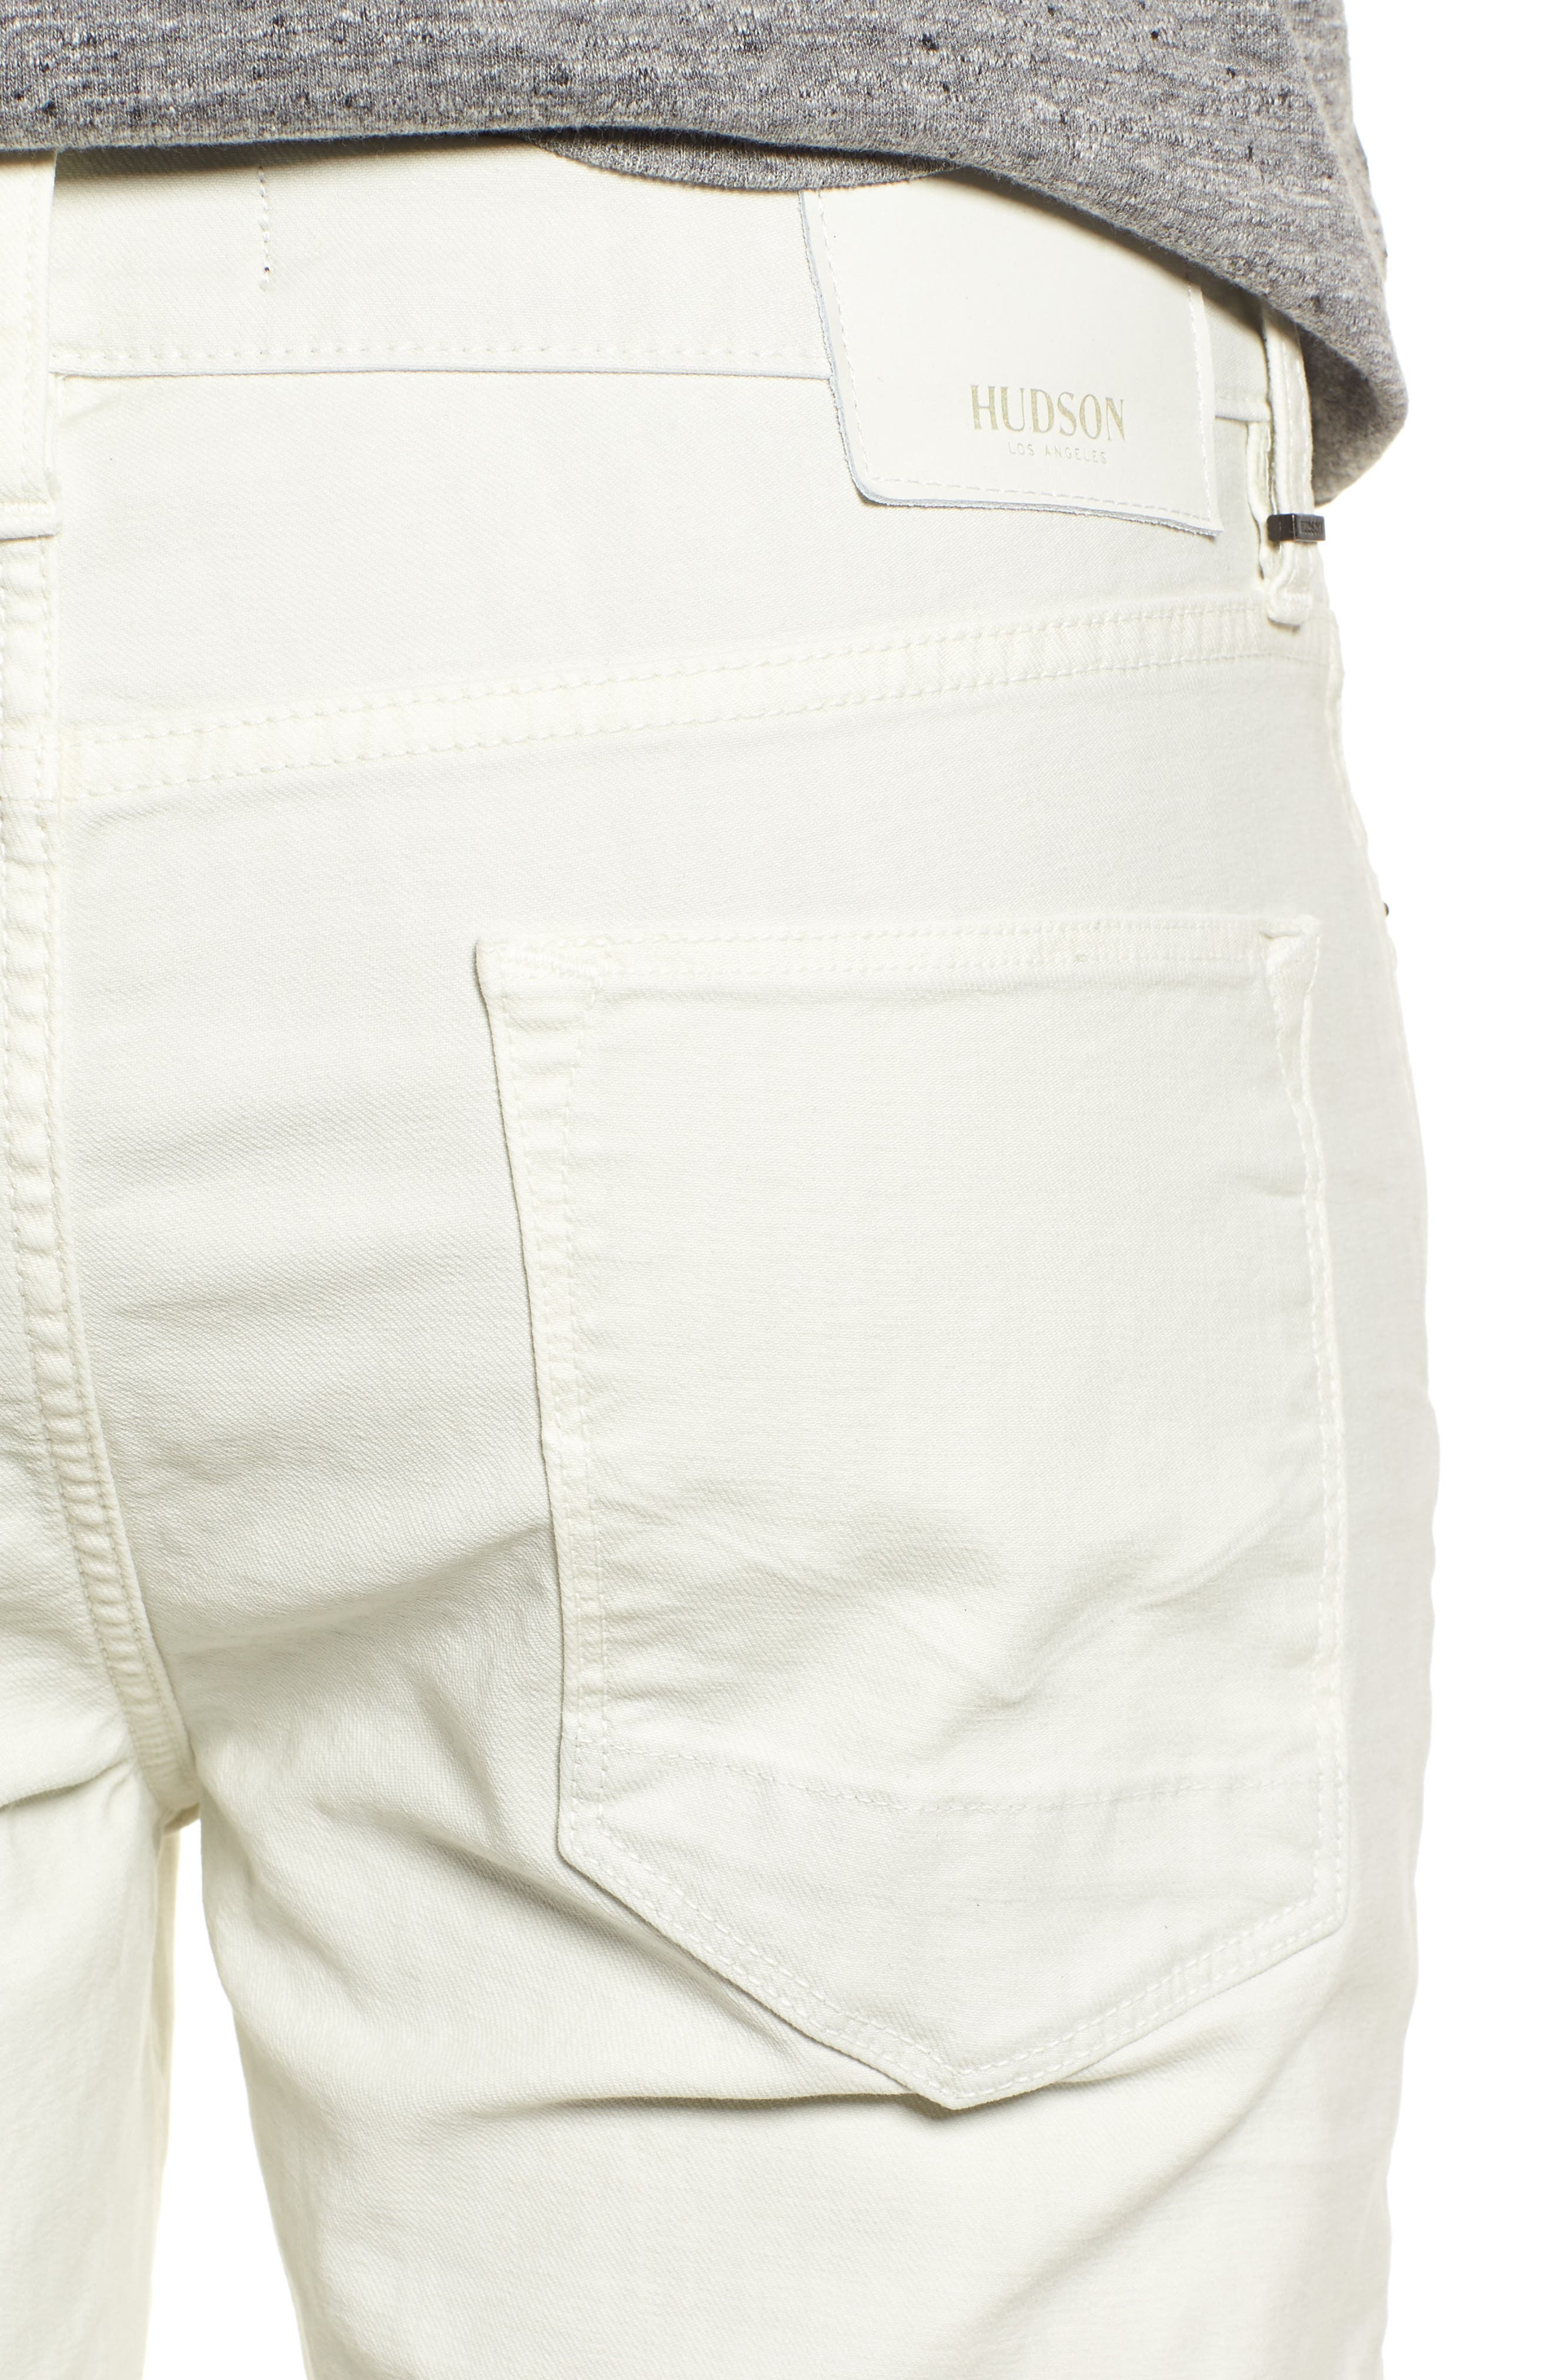 Hudson Axl Skinny Fit Jeans,                             Alternate thumbnail 4, color,                             DIRTY WHITE